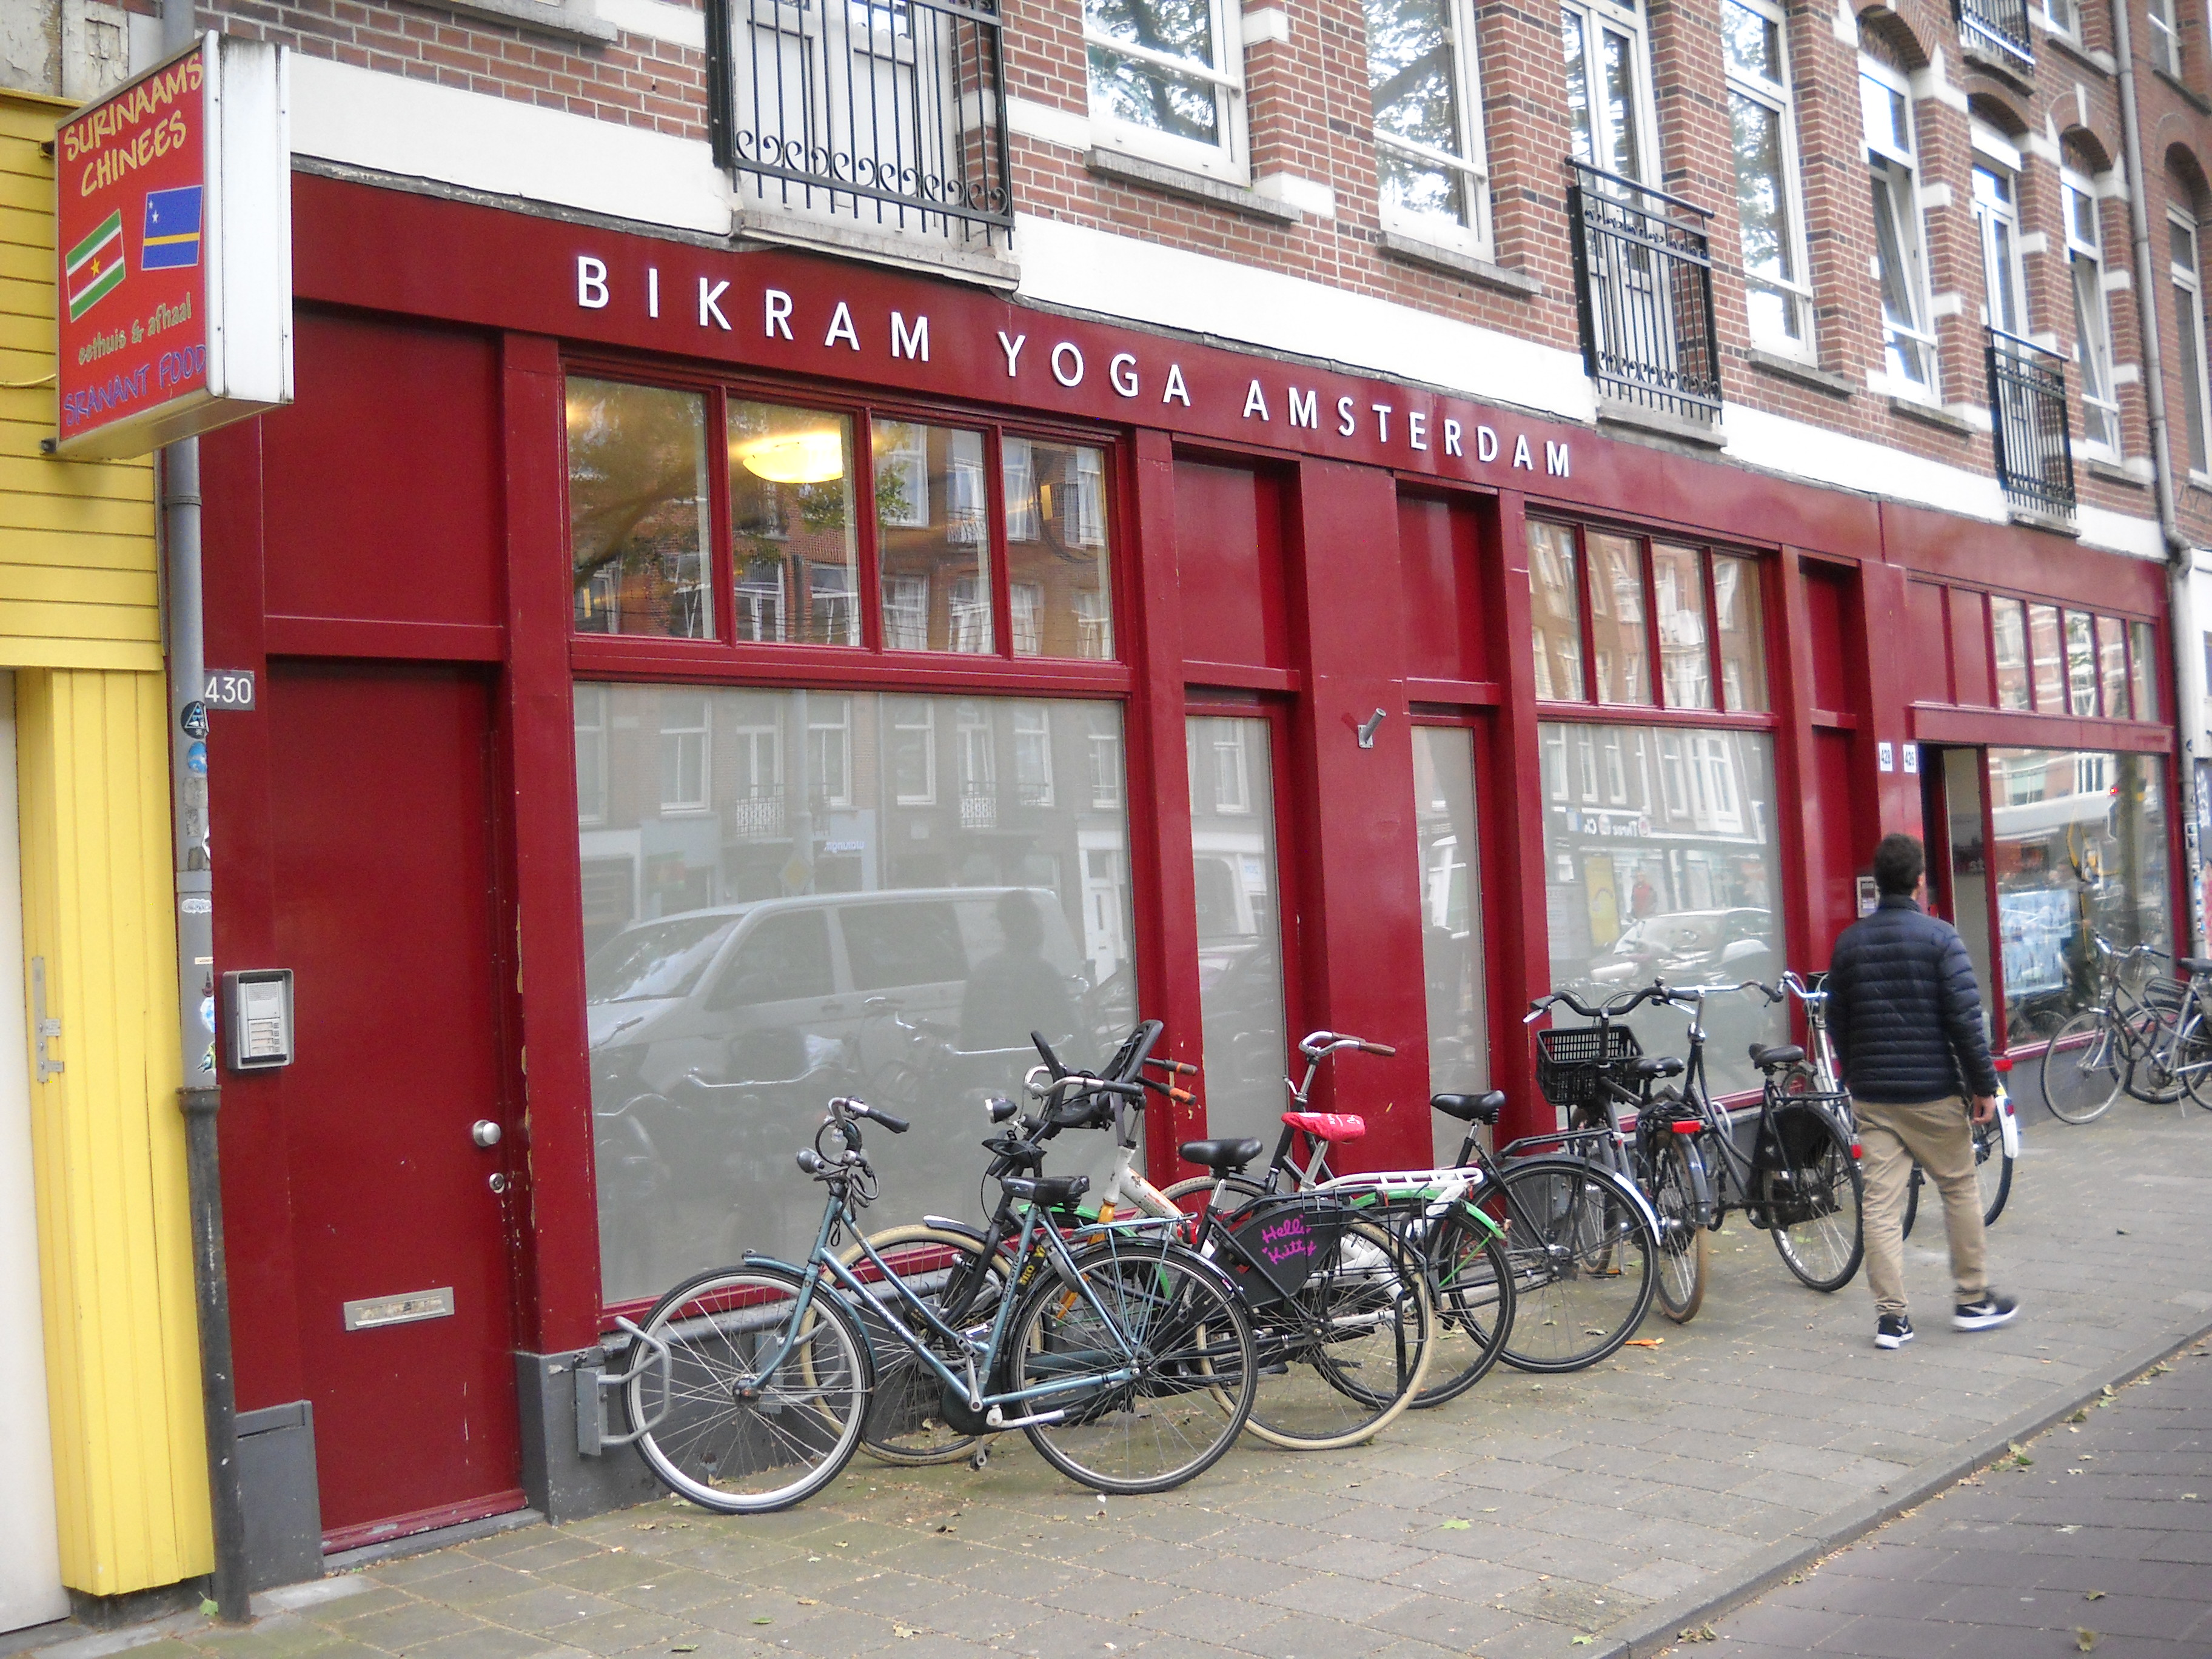 Bikram Yoga Amsterdam Do Paris And Amsterdam Fbf Style Part 2 Five Bag Fit